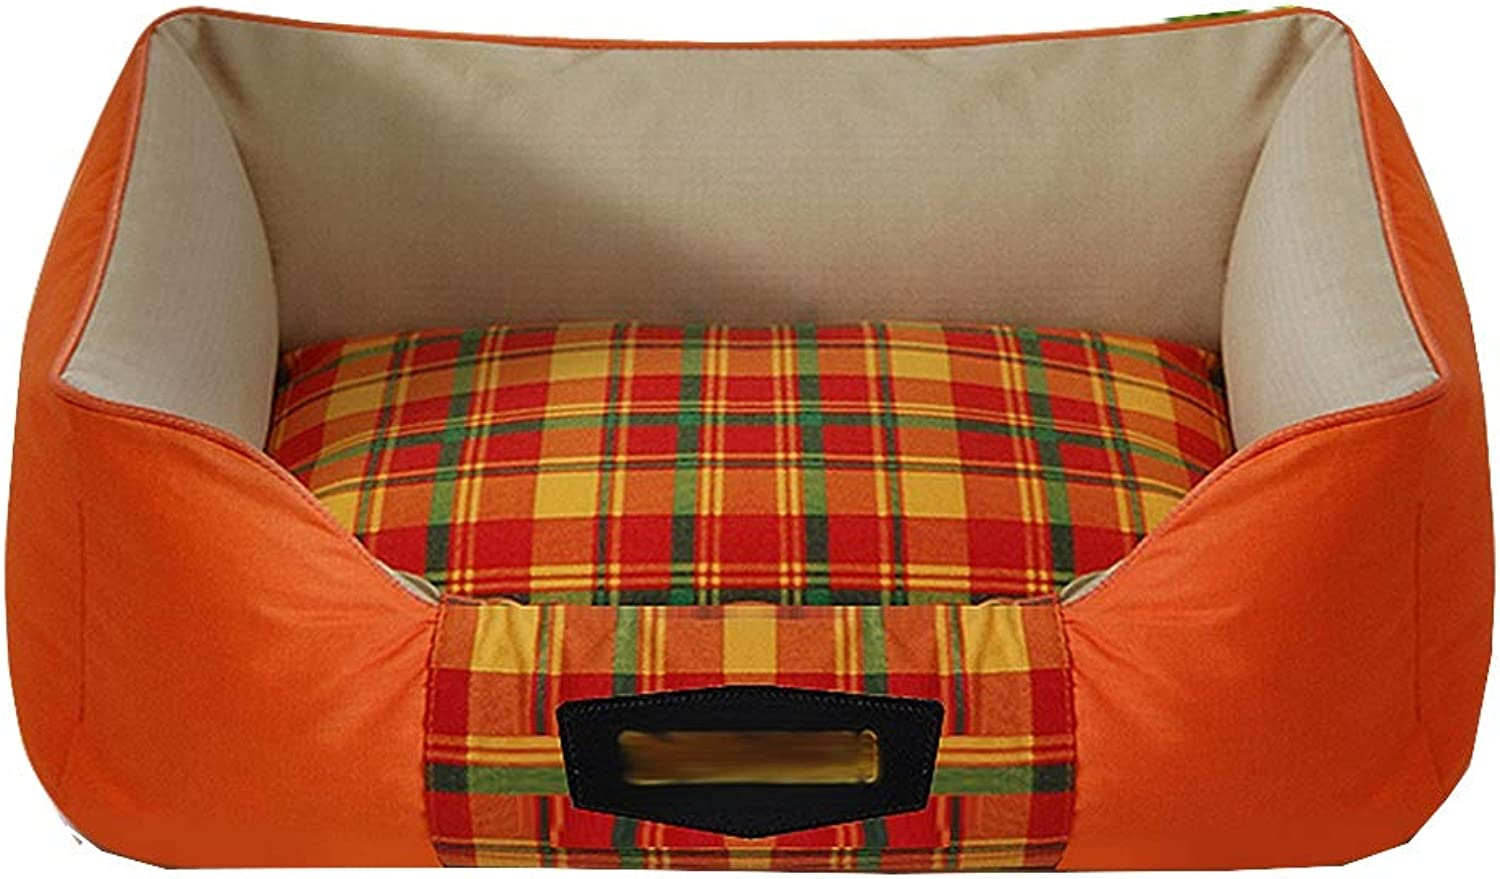 Pet Bed Pet Sofa Cat Nest Pet Nest Dog Nest Cat Kennel Kennel Fully Enclosed Removable And Washable, Nonslip FENGMING (color   orange, Size   L)